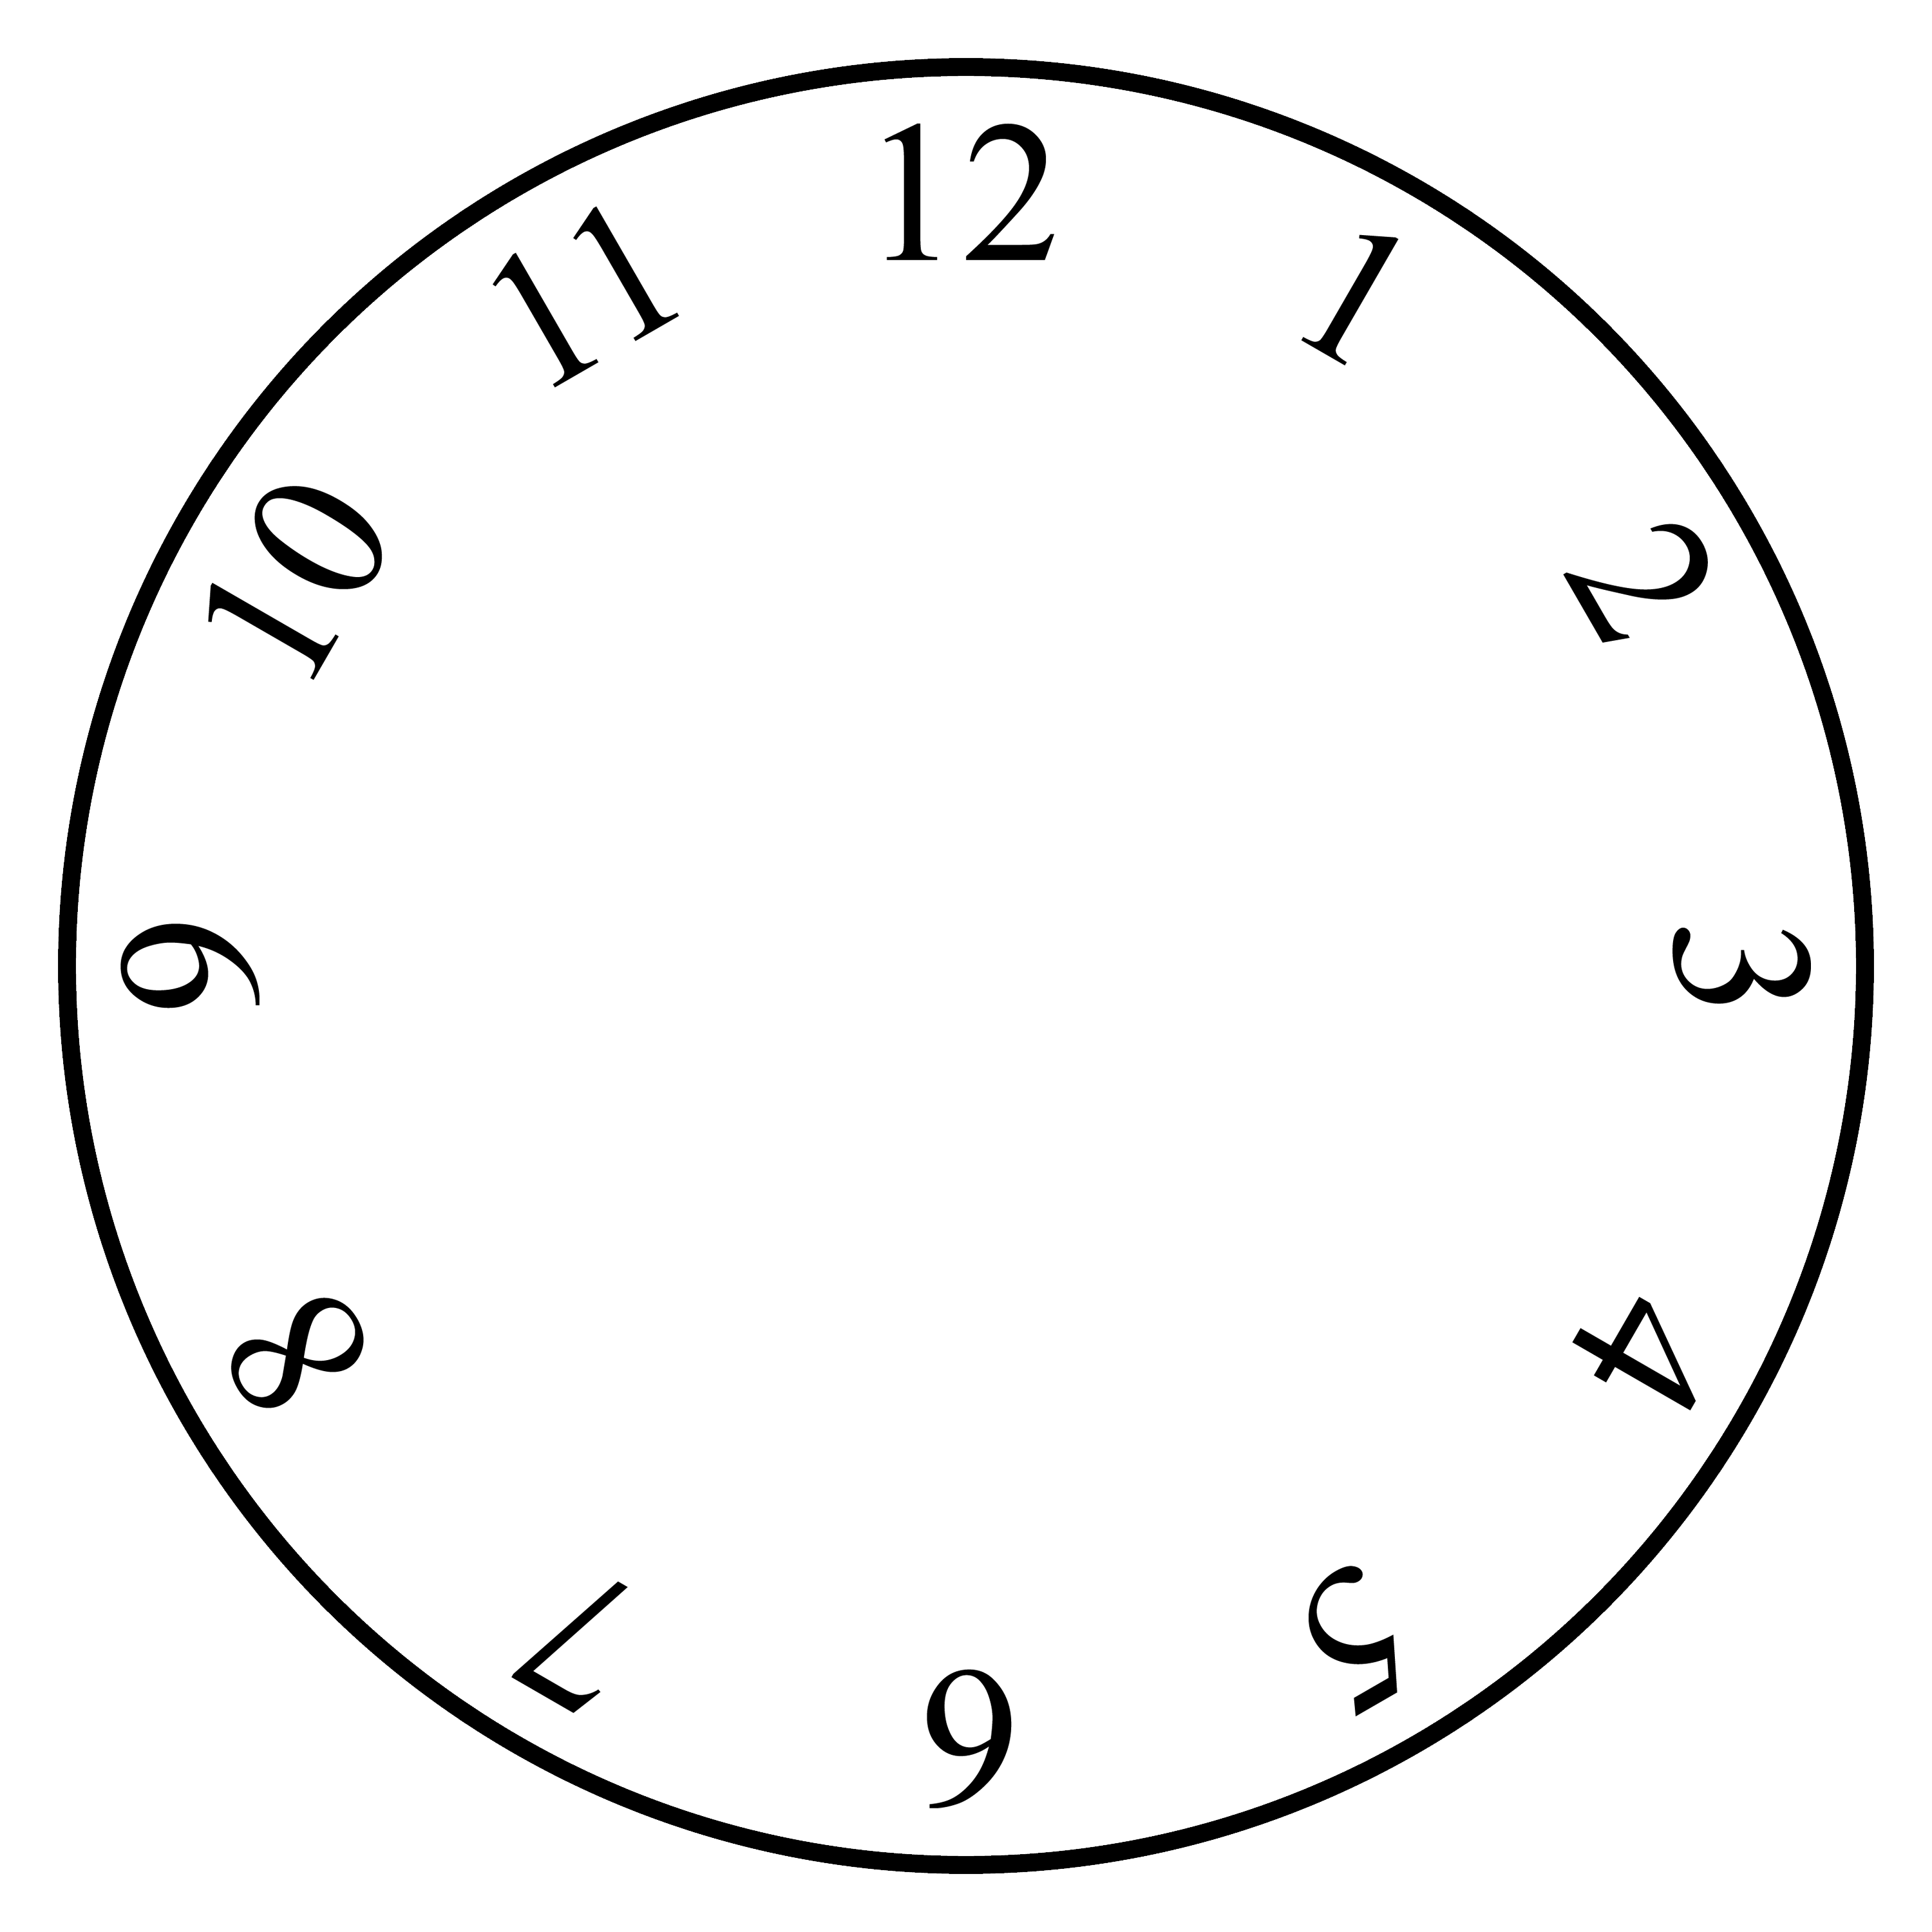 Oval Clock Face Free Clock Templates Download Free Clip Art Free Clip Art On